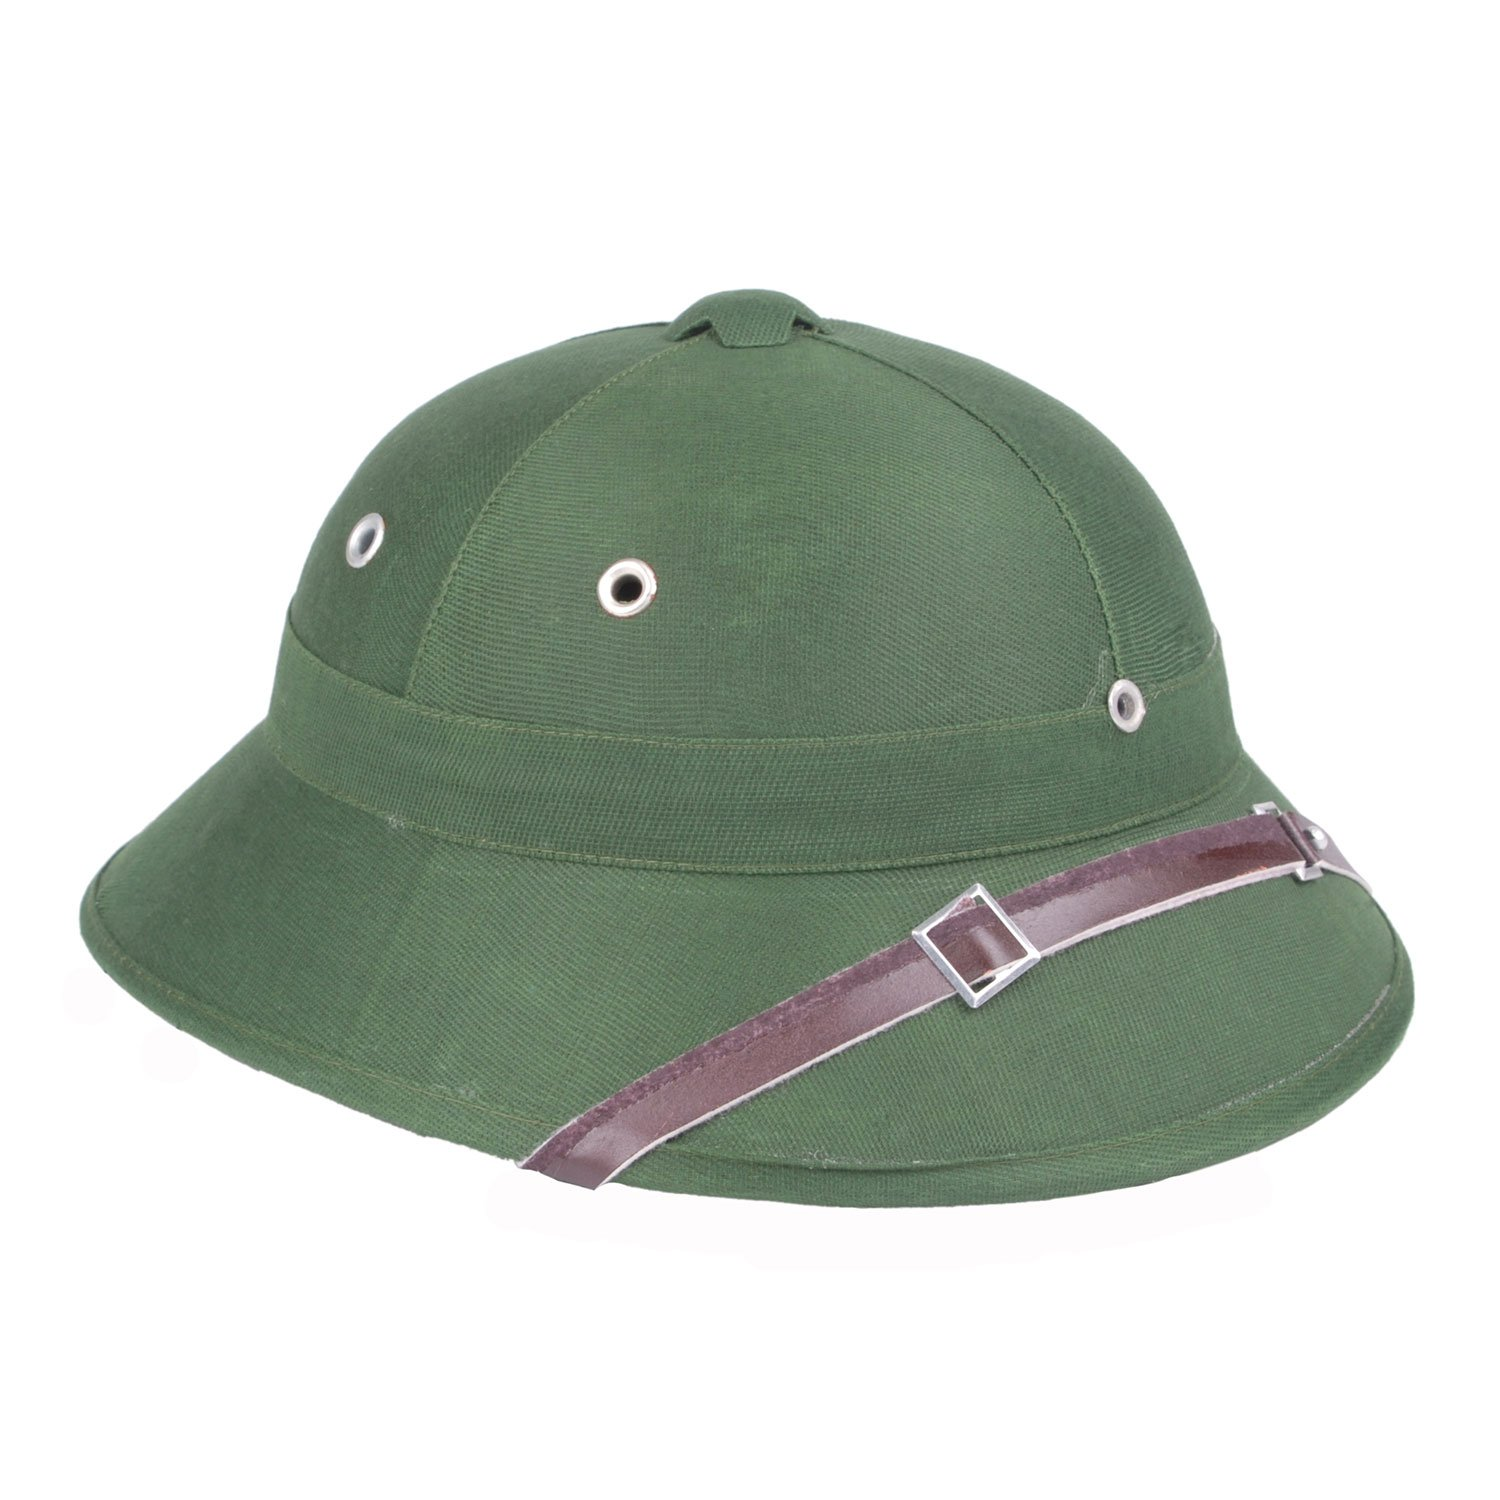 cf0feb20548 Reproduction Vietnam War Army Hat NVA Vietcong Vc Pith Helmet Green   Amazon.co.uk  Sports   Outdoors